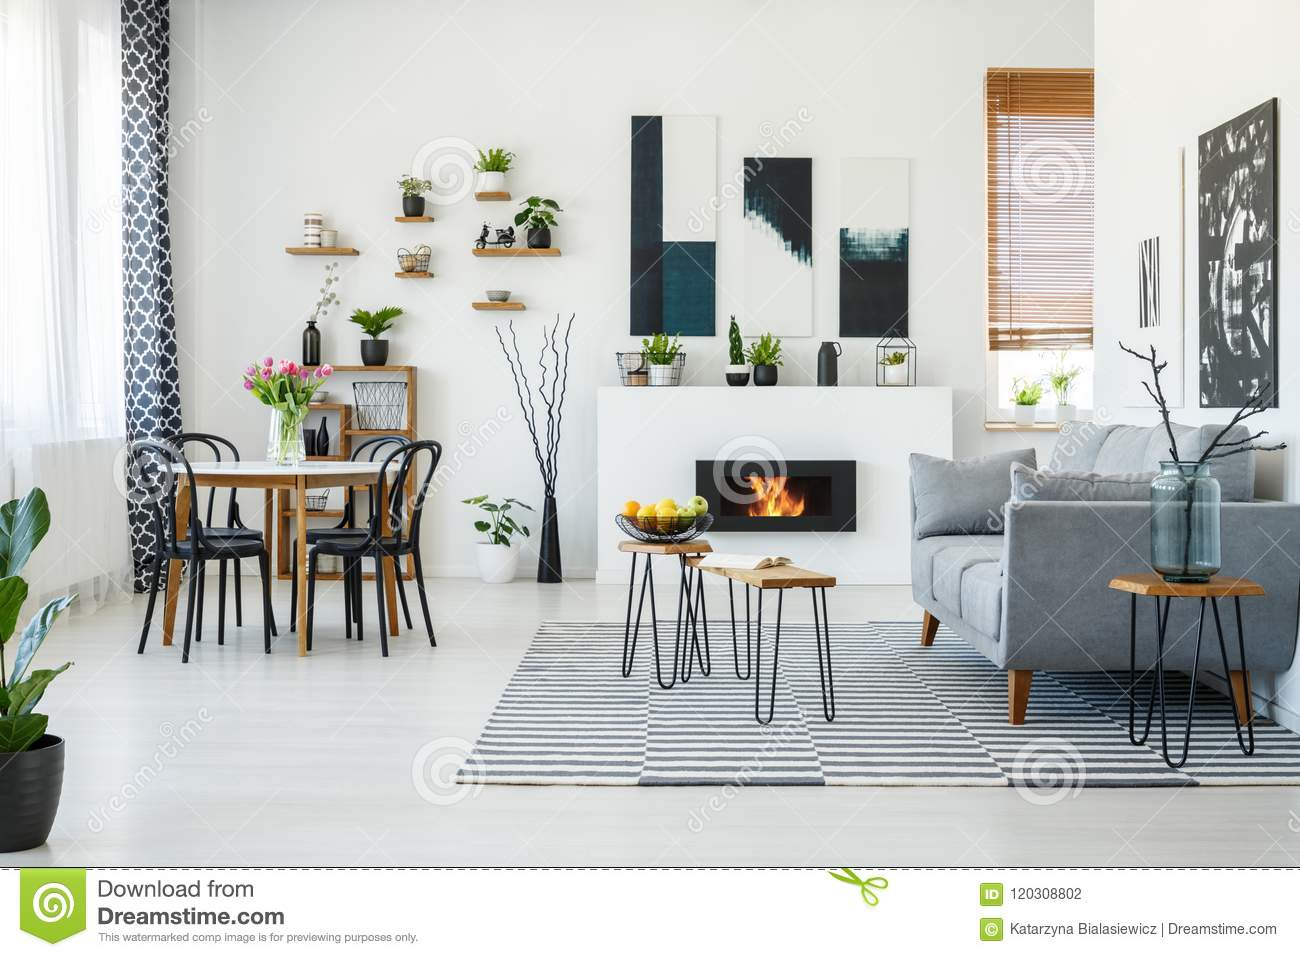 Black Chairs At Dining Table In Bright Living Room Interior With Grey Sofa Near Fireplace Real Photo